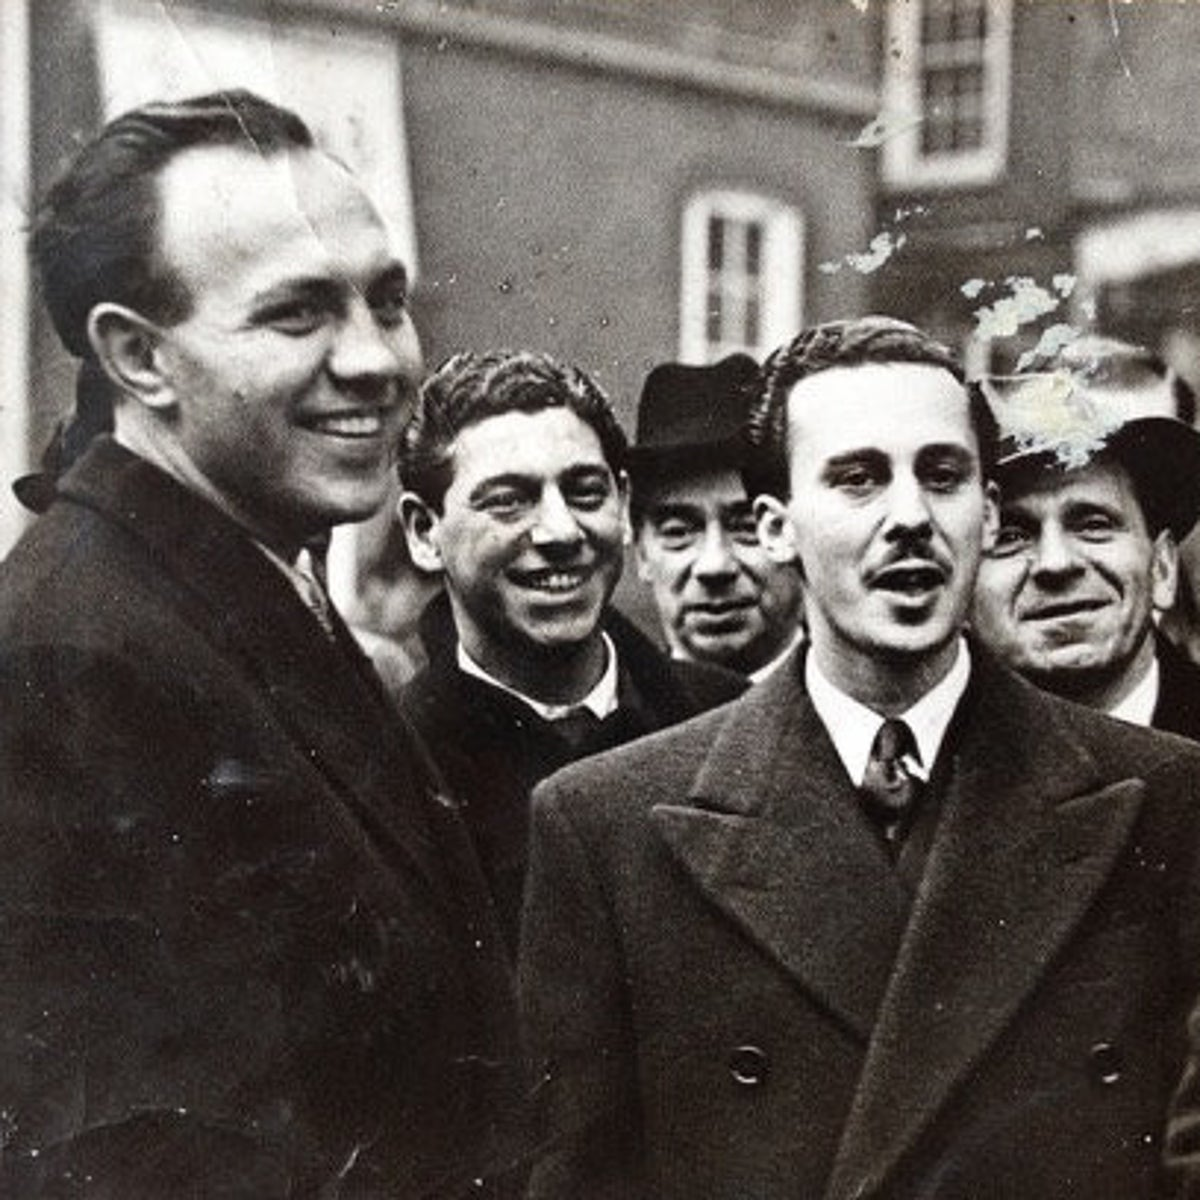 The 43 Group members Gerry Flamberg, foreground left, and Jonny Wimborne, foreground right, moments after being acquitted for the attempted murder of fascist John Preen in London, late 1940s.